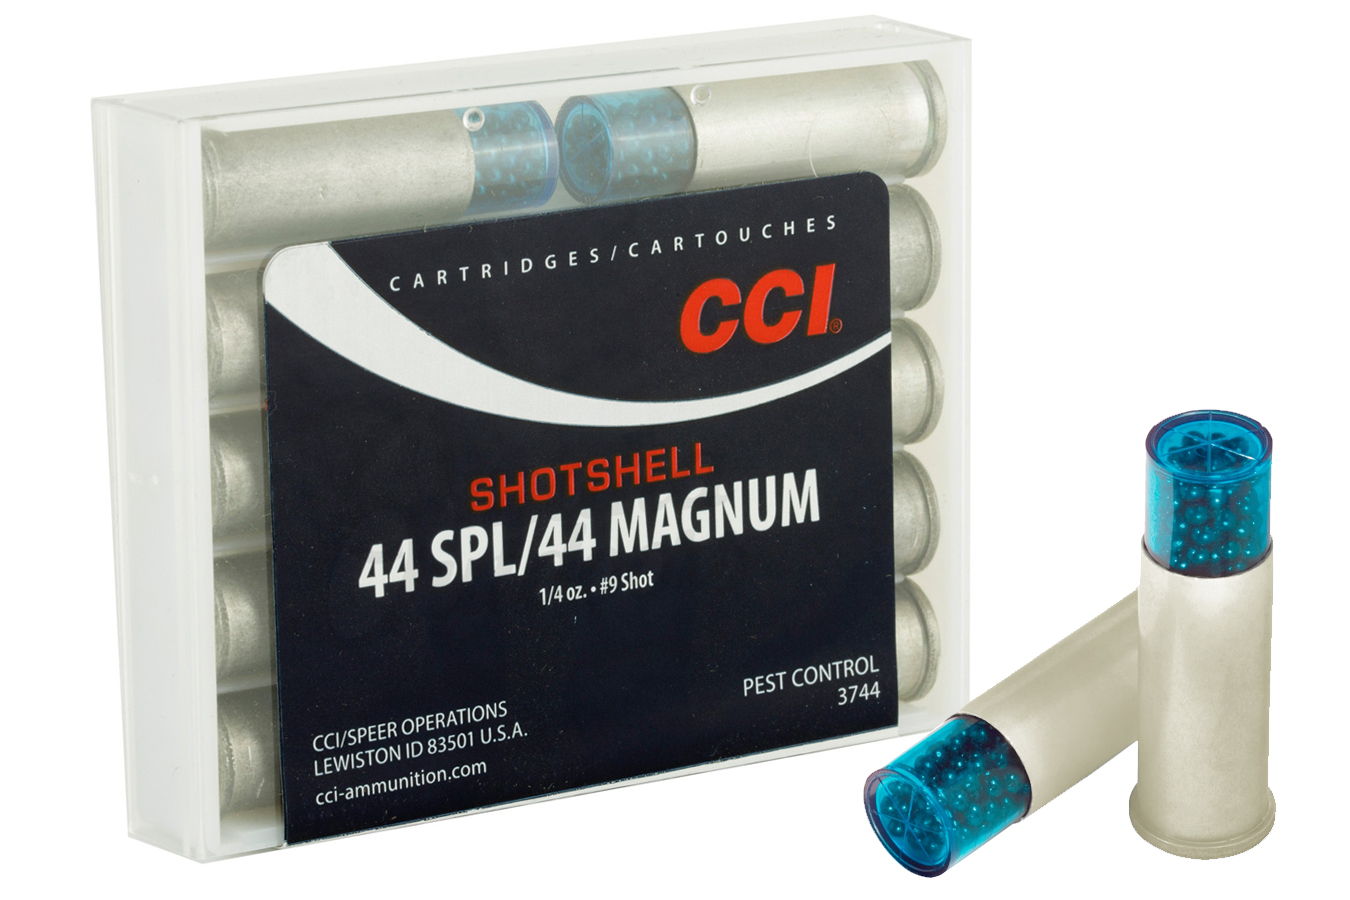 44 SPL/MAG SHOTSHELL 9 SHOT